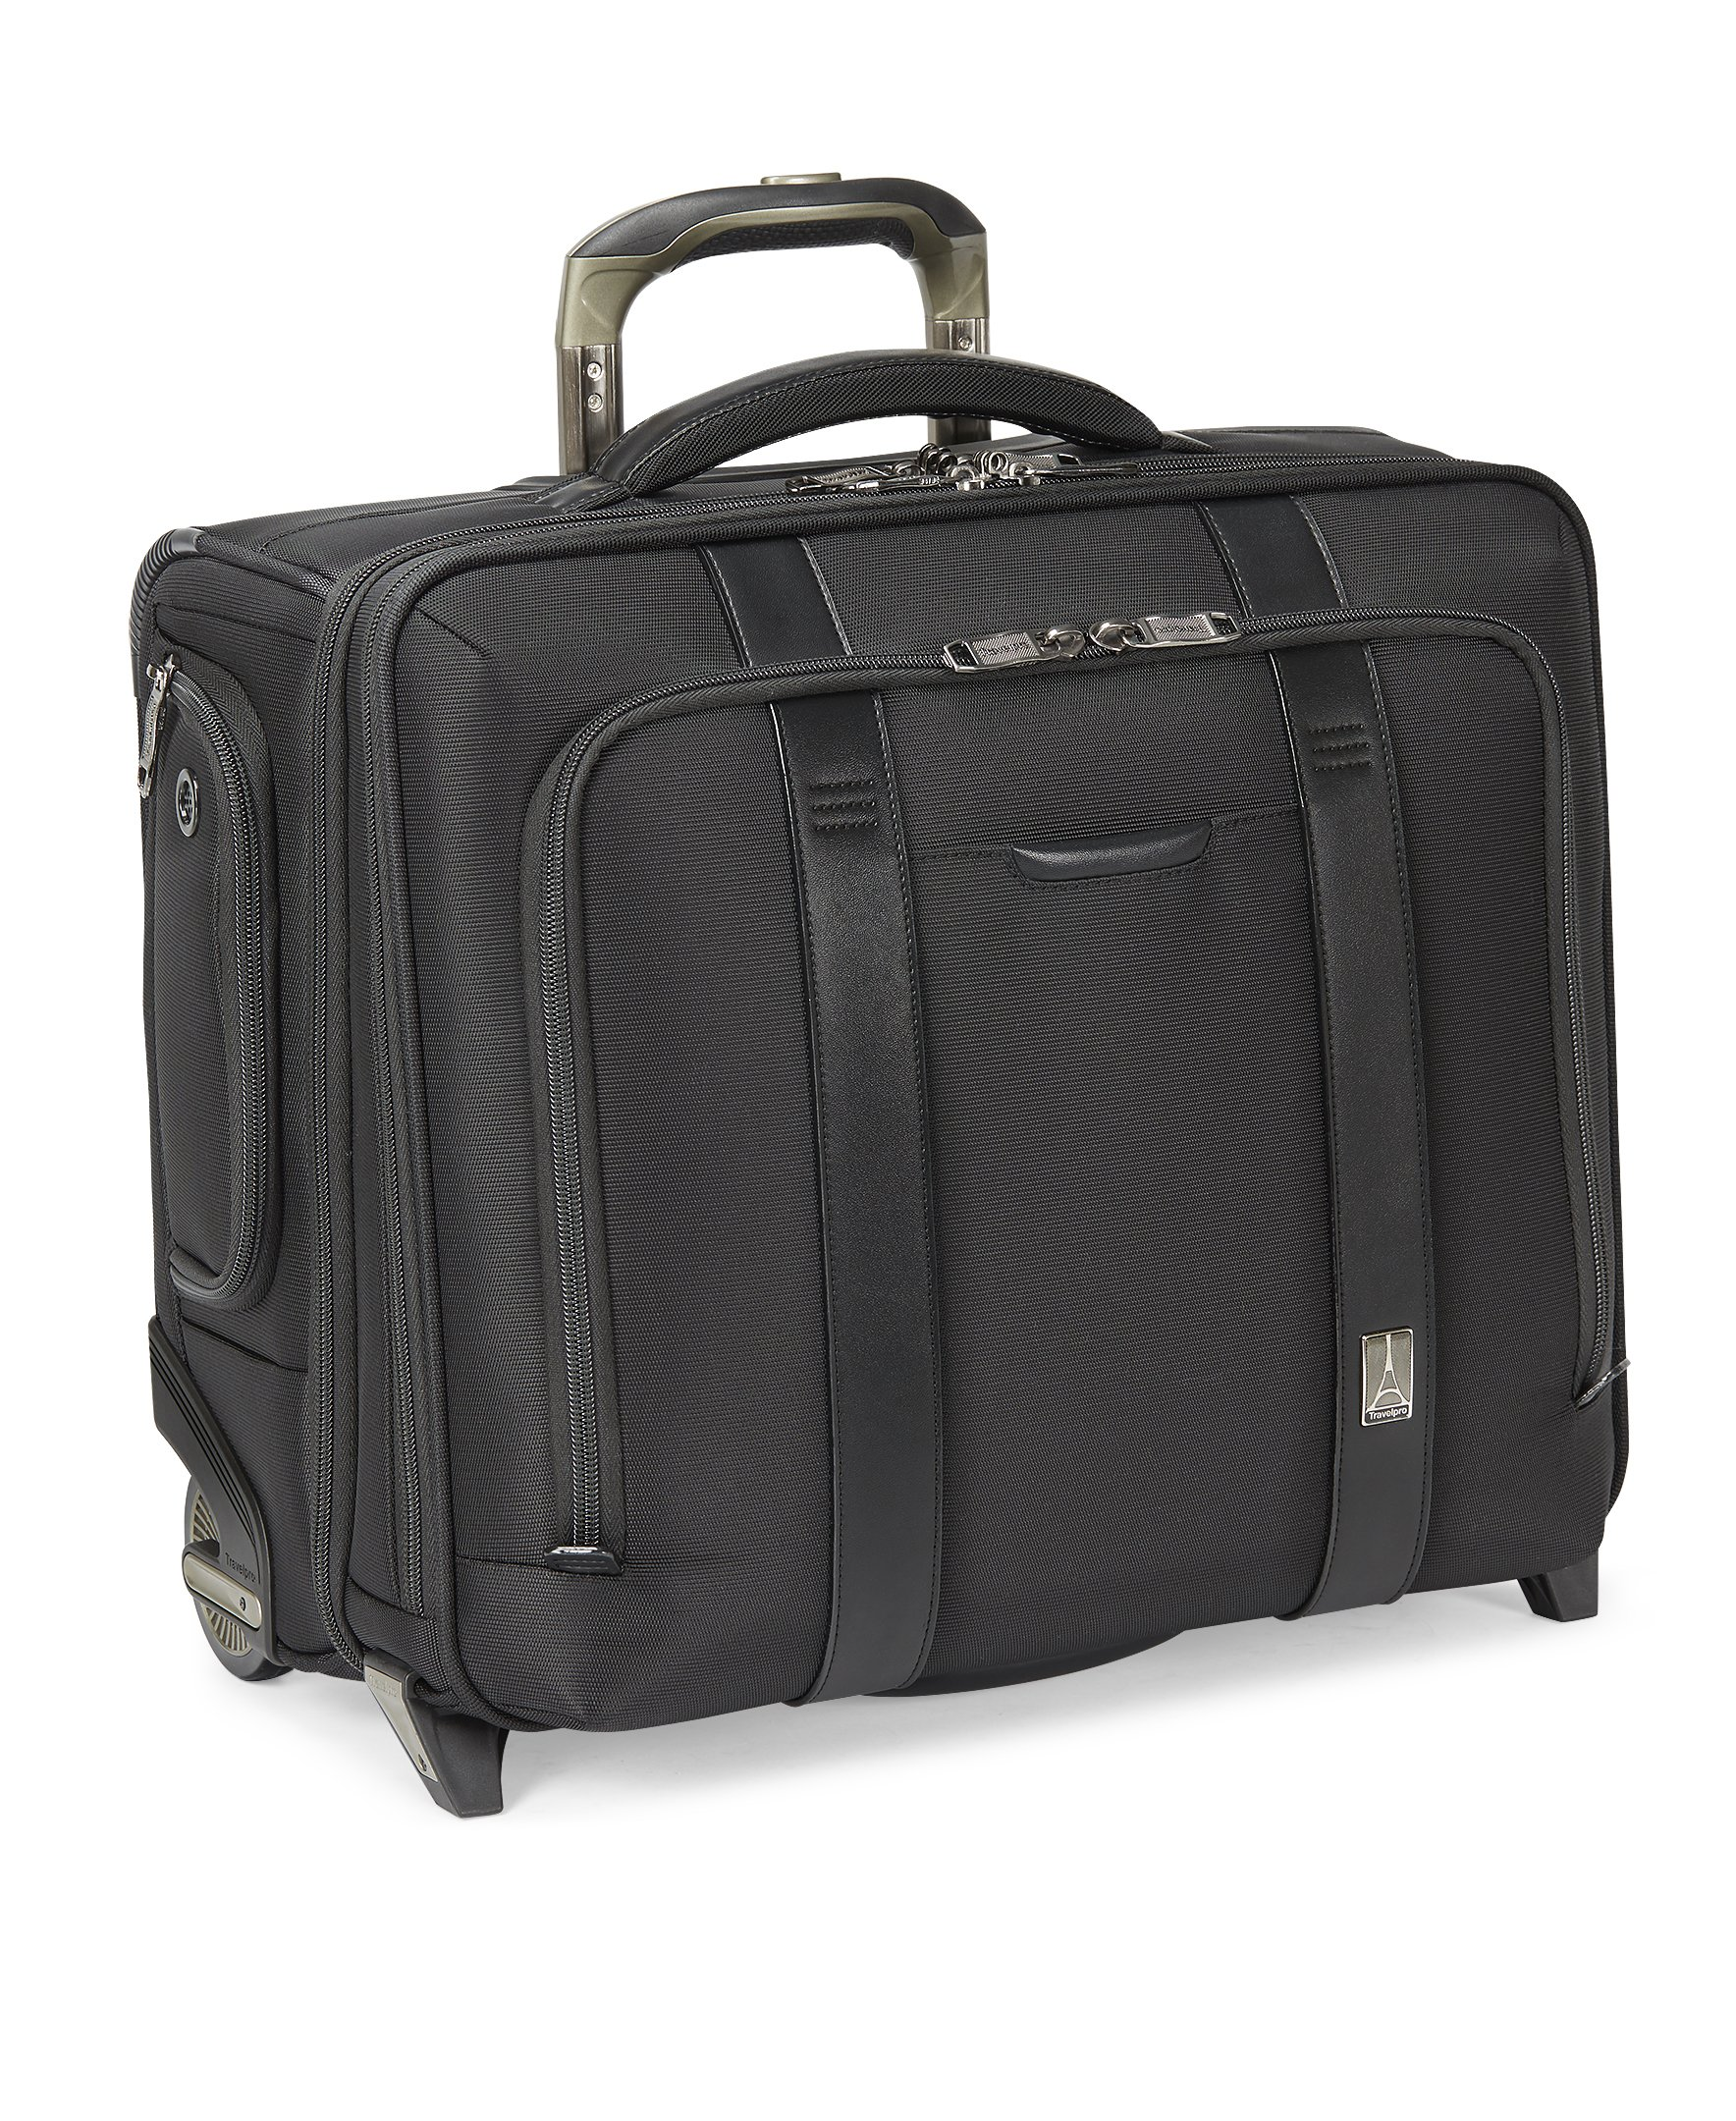 Travelpro Crew Executive Choice2 Wheeled Brief Bag 17-in. , Black